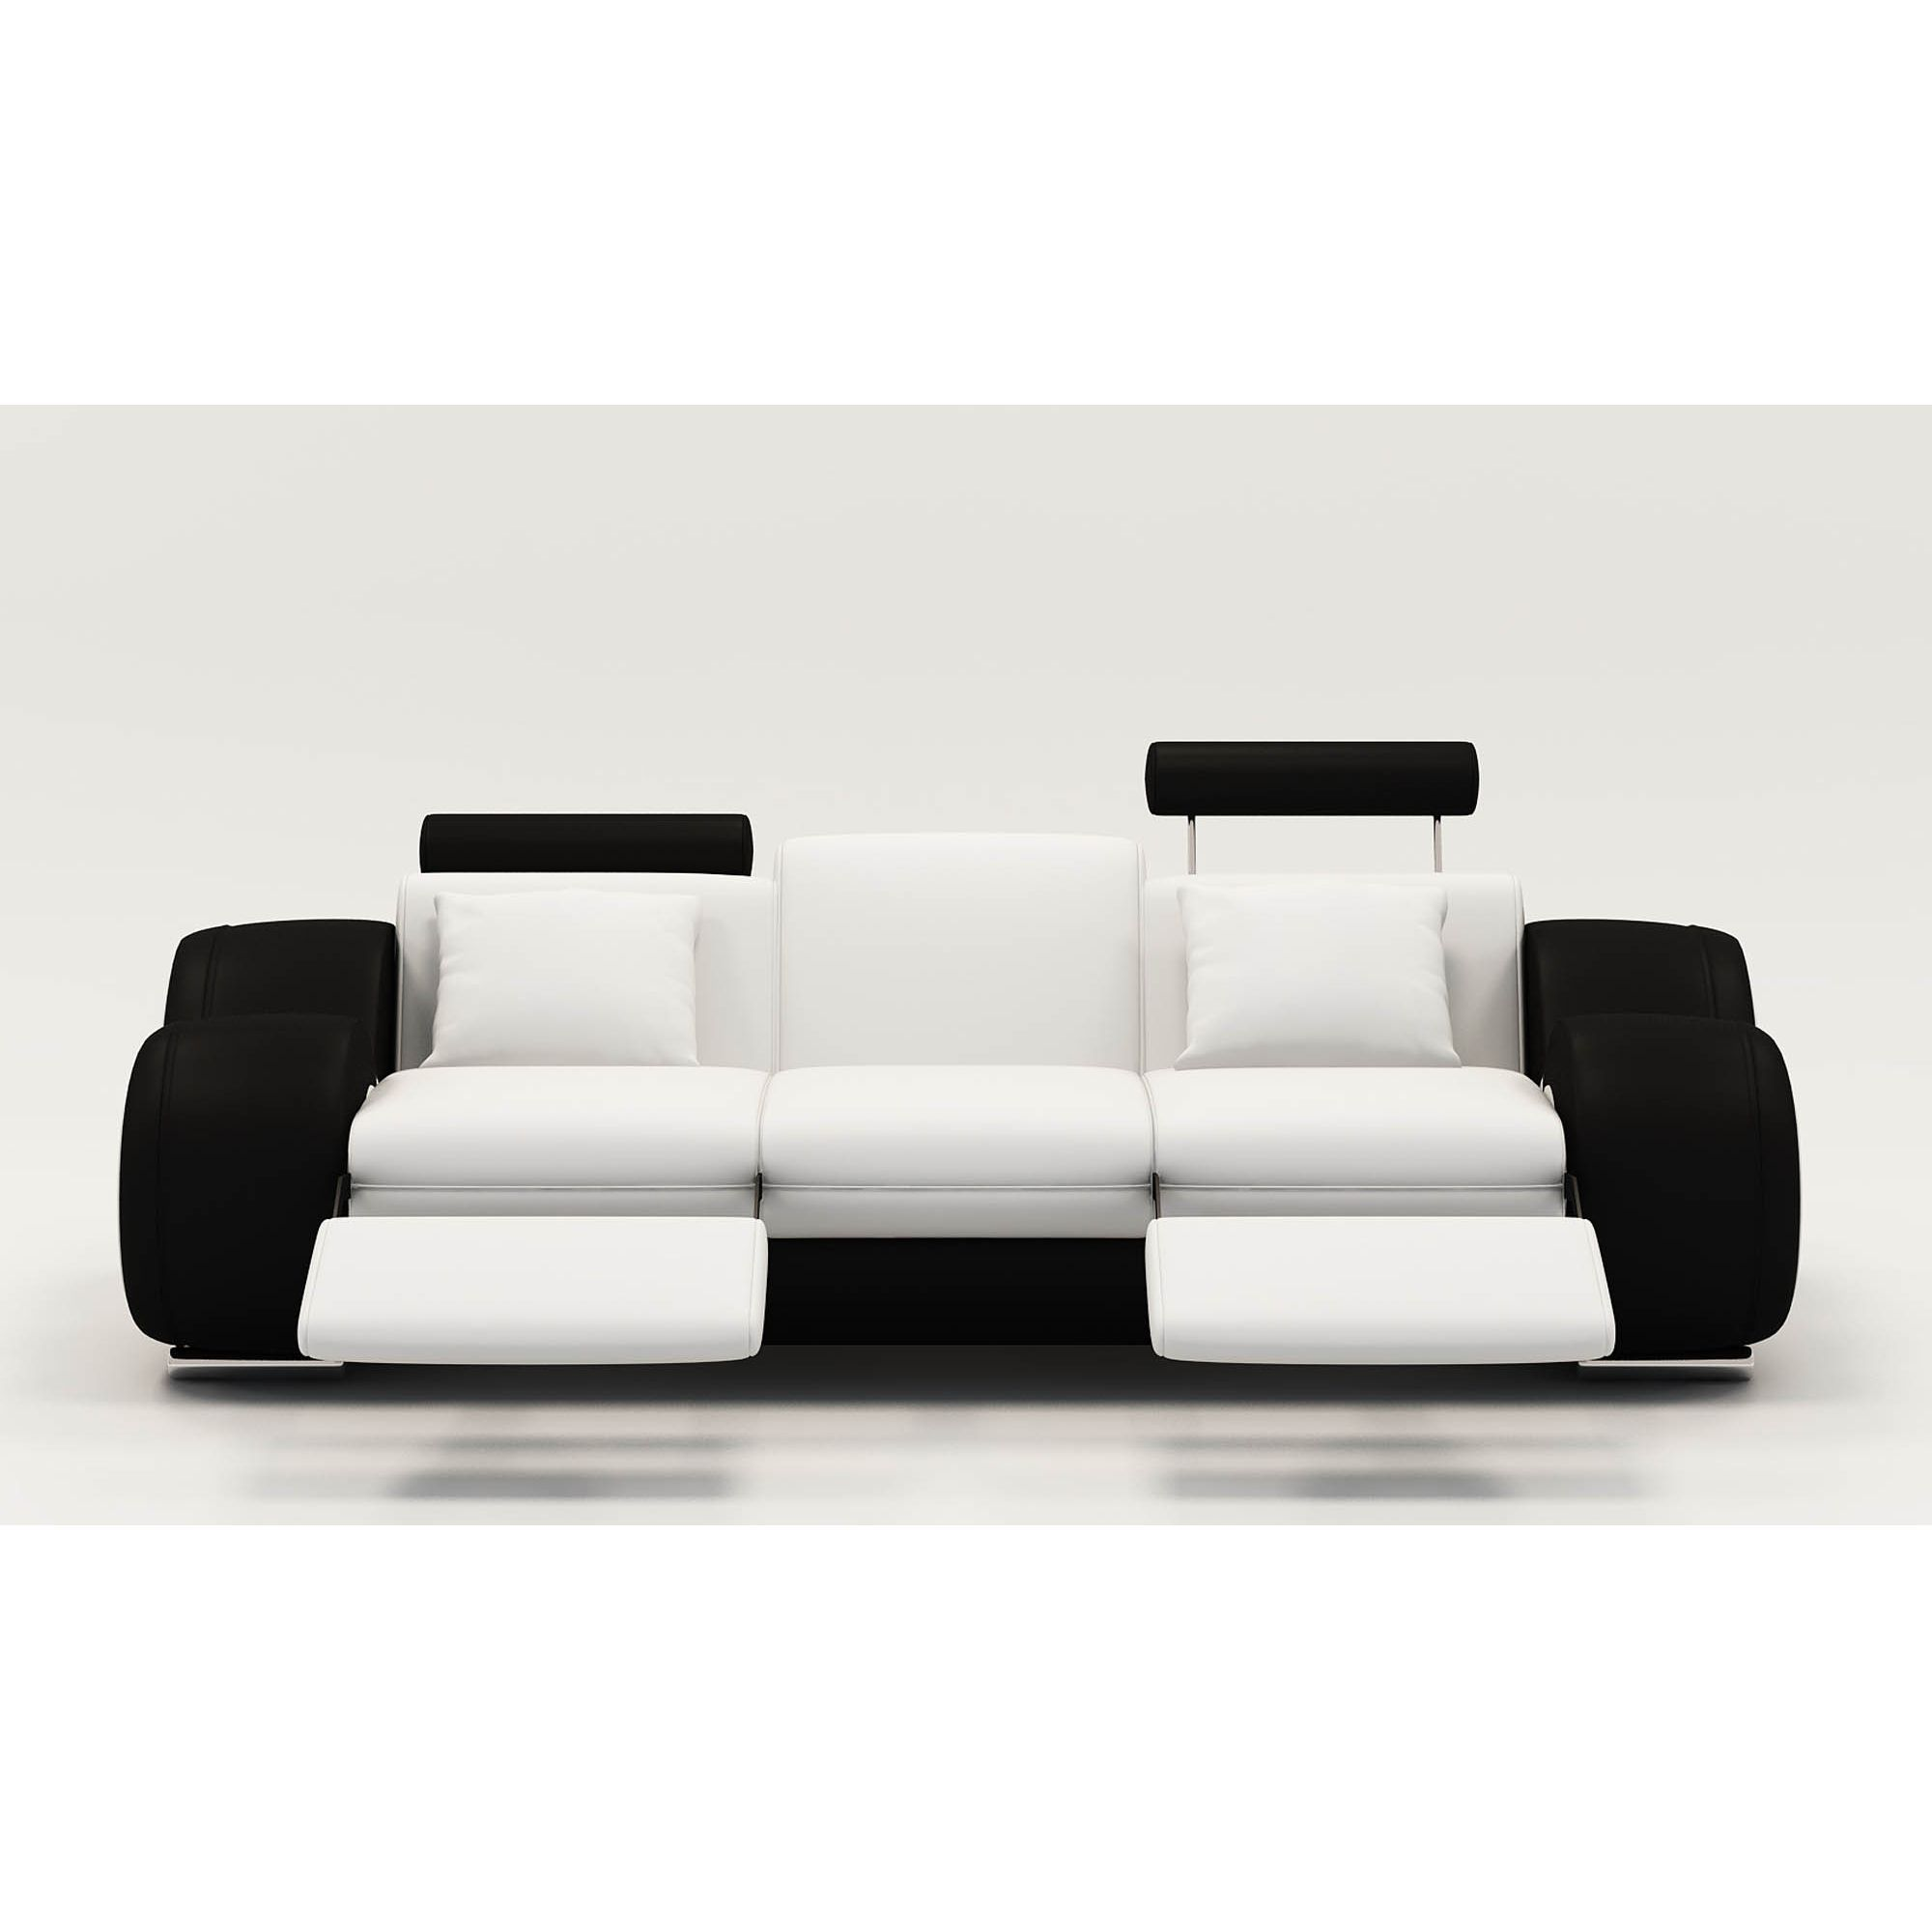 Deco in paris ensemble canape relax design 3 2 1 places - Canape design et confortable ...